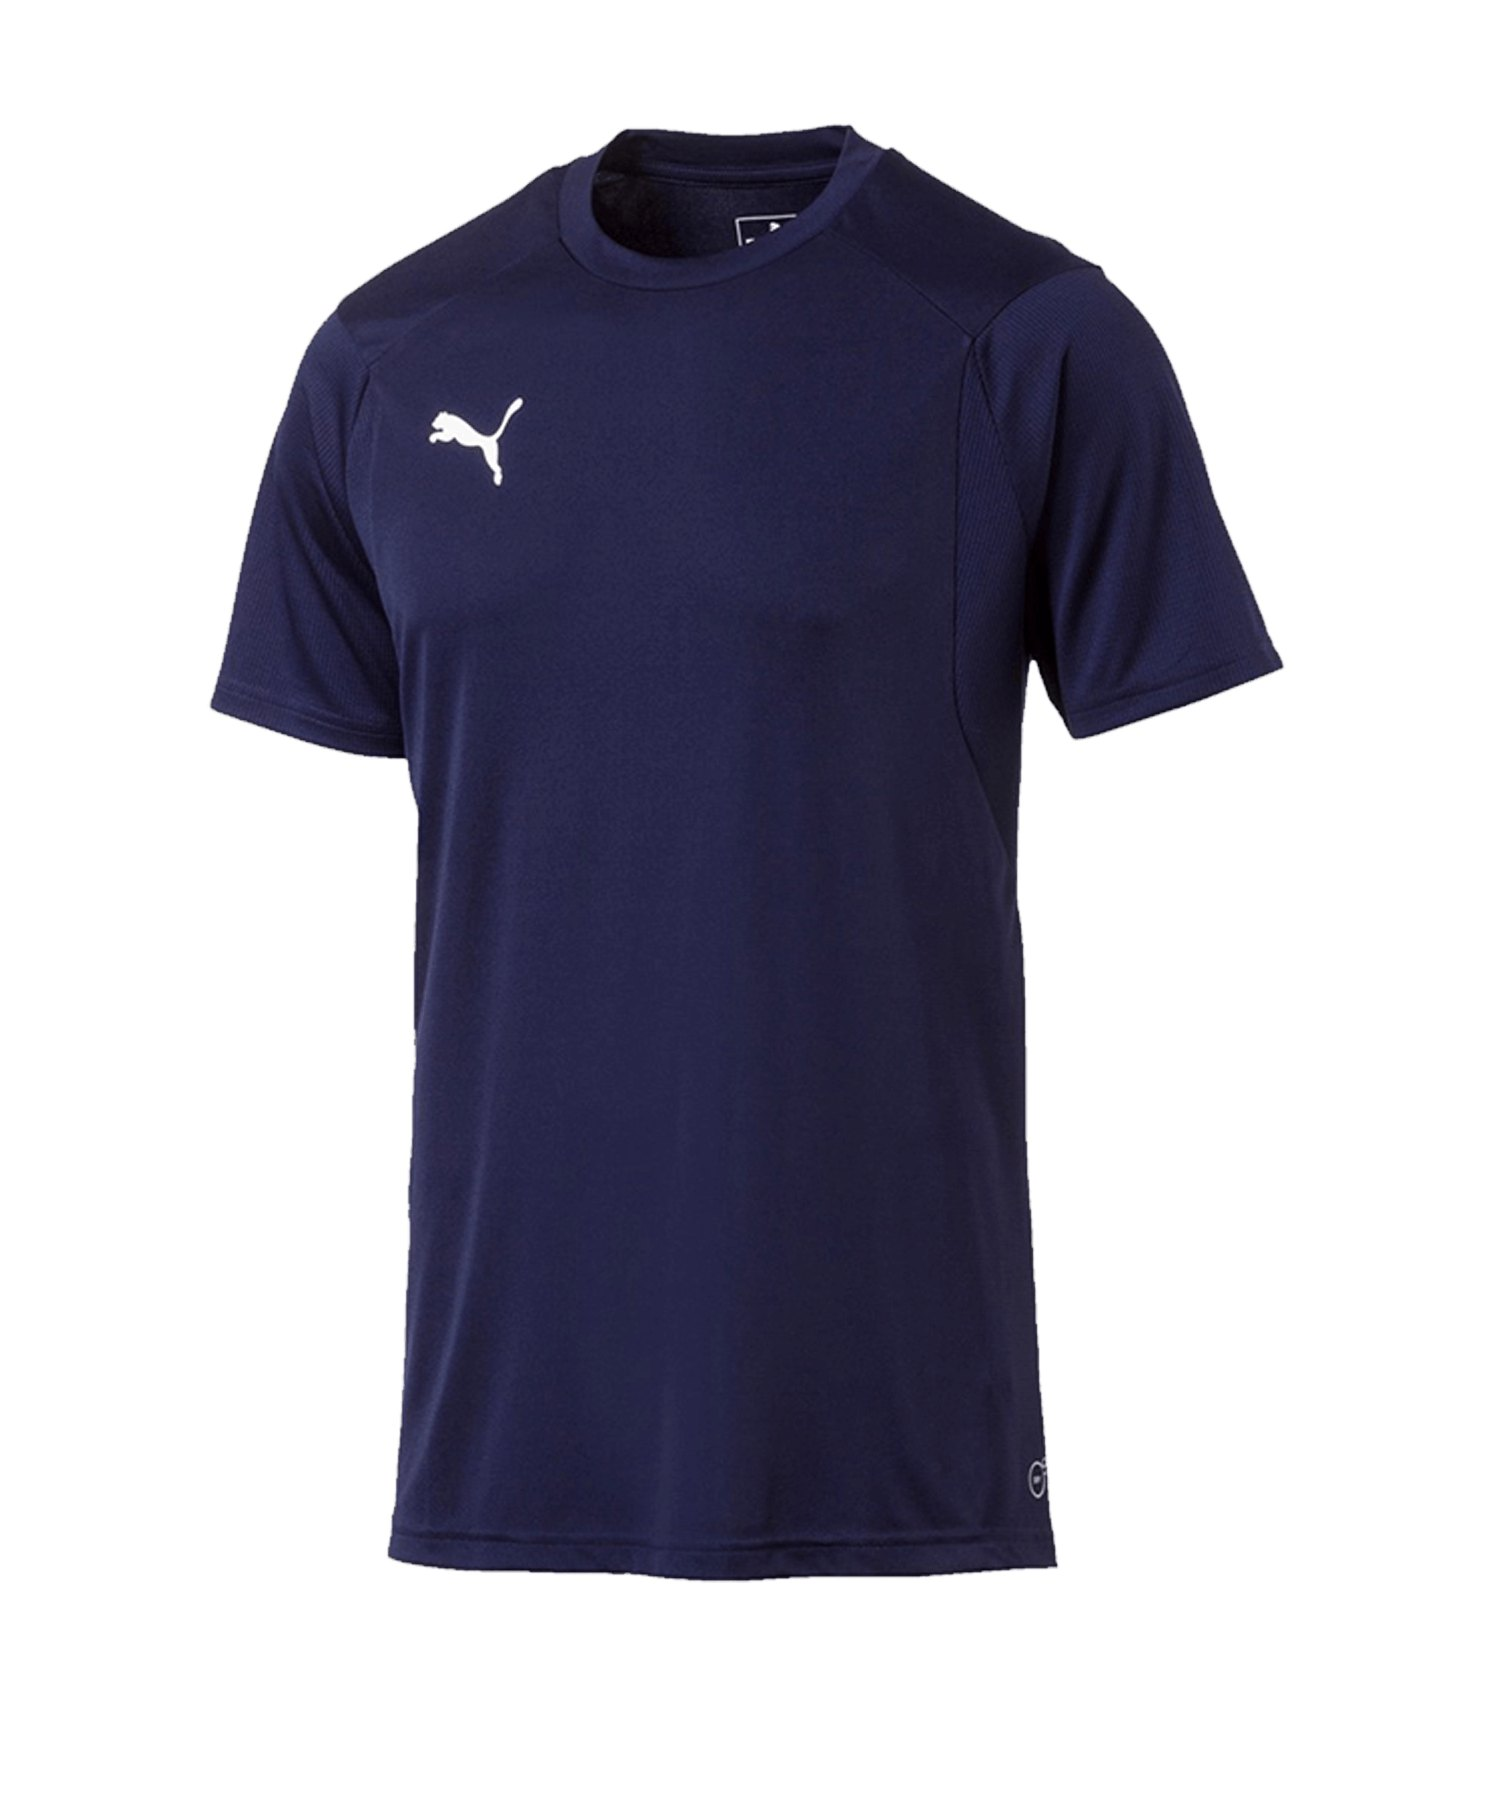 PUMA LIGA Training T-Shirt Blau F06 - blau